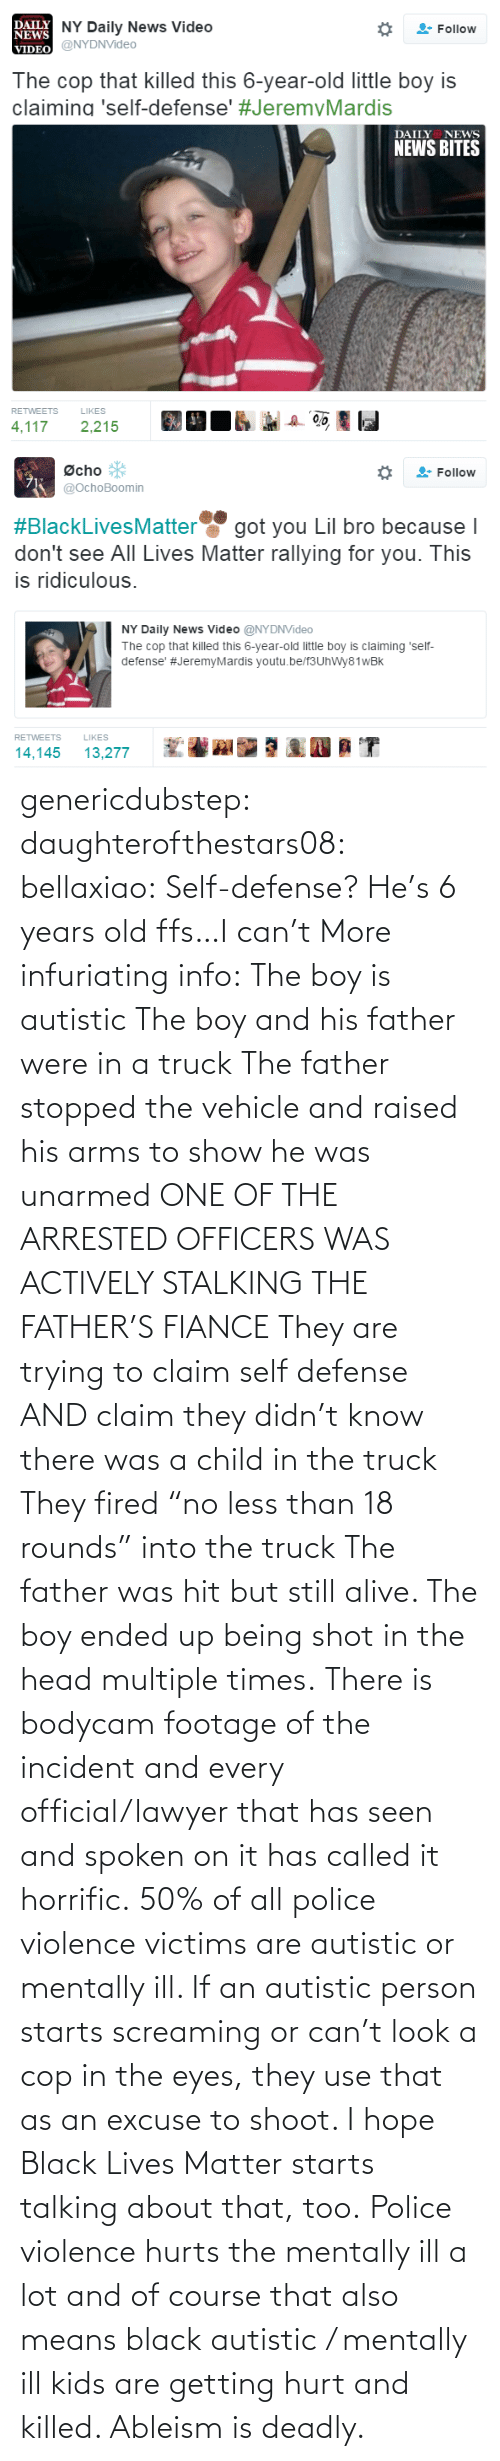 "On It: genericdubstep: daughterofthestars08:  bellaxiao:  Self-defense? He's 6 years old ffs…I can't  More infuriating info: The boy is autistic The boy and his father were in a truck The father stopped the vehicle and raised his arms to show he was unarmed ONE OF THE ARRESTED OFFICERS WAS ACTIVELY STALKING THE FATHER'S FIANCE They are trying to claim self defense AND claim they didn't know there was a child in the truck They fired ""no less than 18 rounds"" into the truck The father was hit but still alive. The boy ended up being shot in the head multiple times. There is bodycam footage of the incident and every official/lawyer that has seen and spoken on it has called it horrific.  50% of all police violence victims are autistic or mentally ill. If an autistic person starts screaming or can't look a cop in the eyes, they use that as an excuse to shoot. I hope Black Lives Matter starts talking about that, too. Police violence hurts the mentally ill a lot and of course that also means black autistic / mentally ill kids are getting hurt and killed. Ableism is deadly."